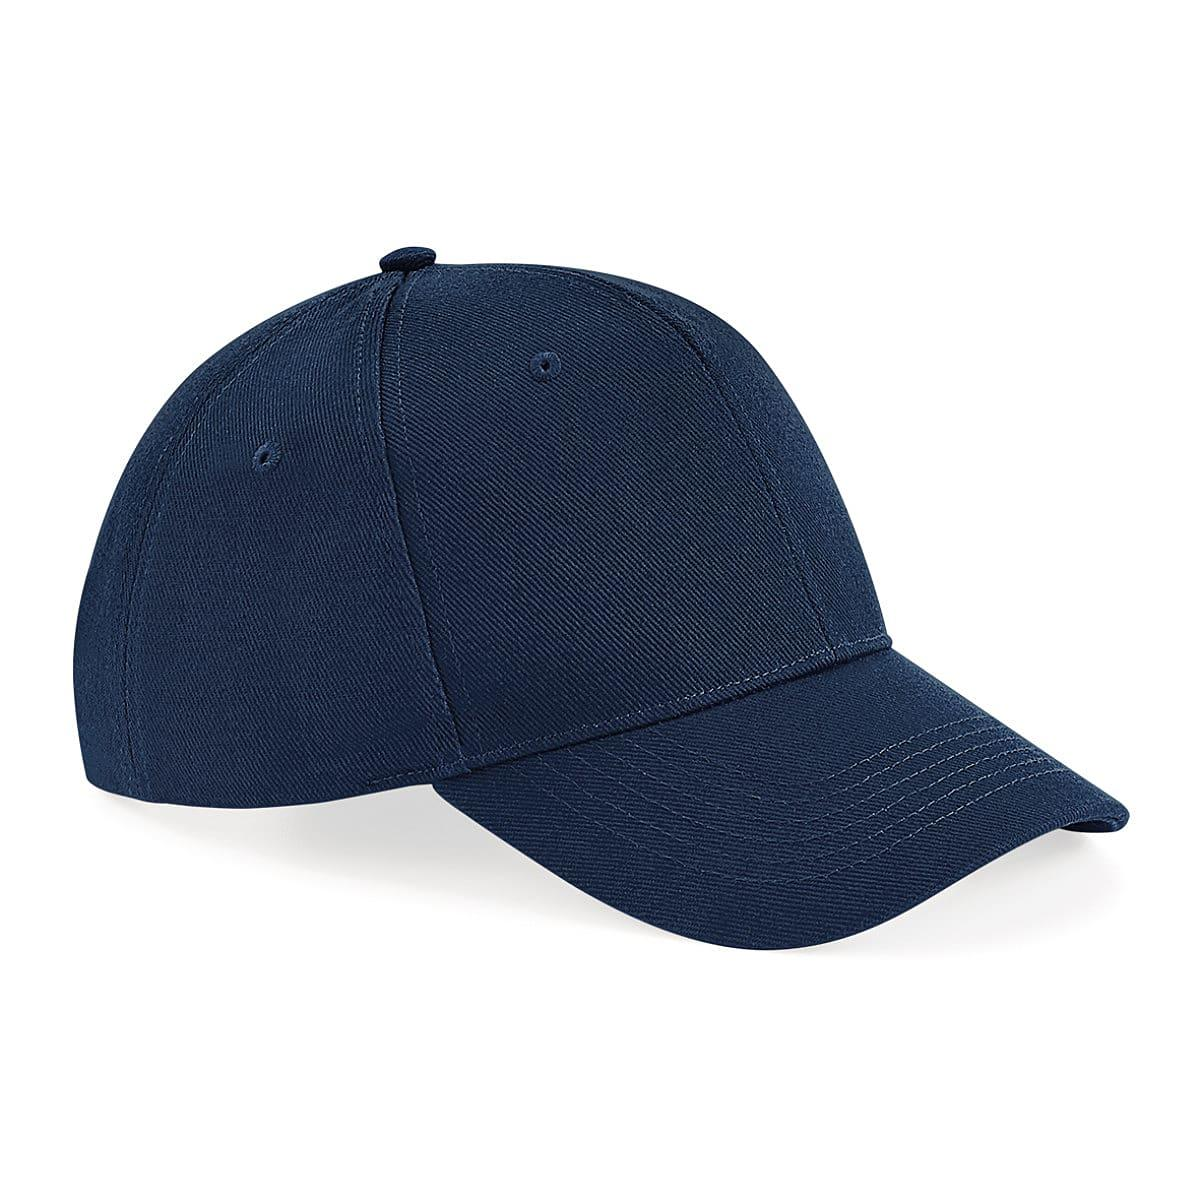 Beechfield Untimate 6 Panel Cap in French Navy (Product Code: B18)